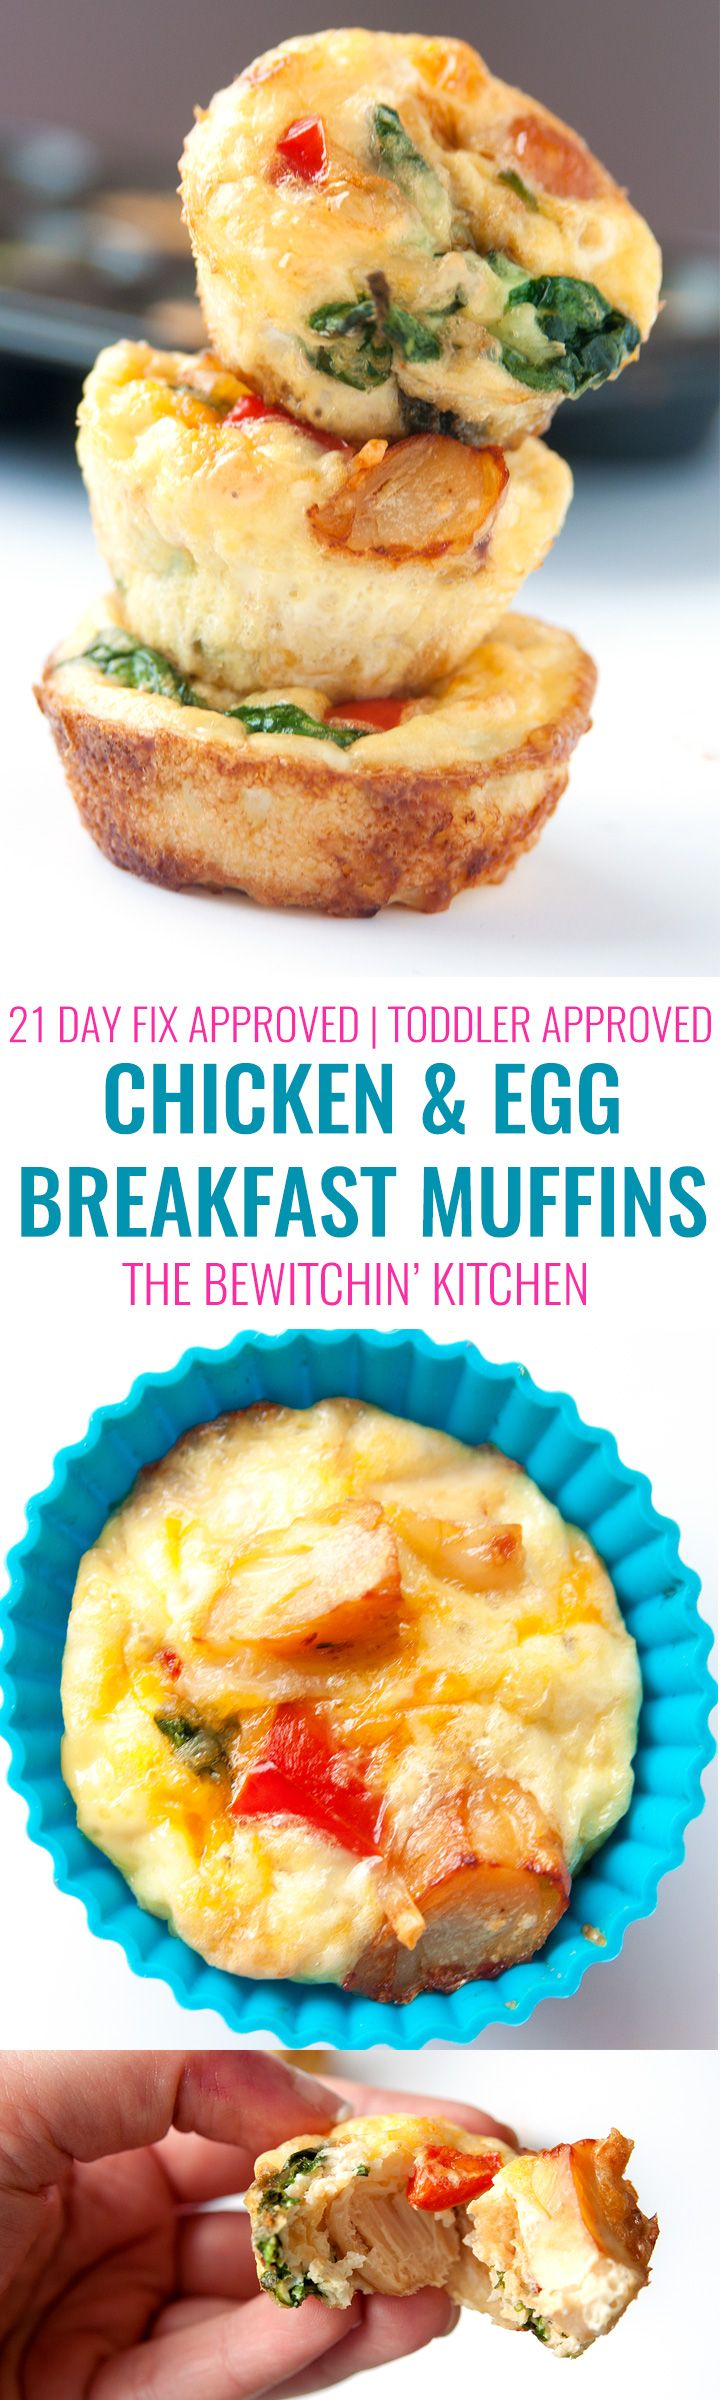 Chicken Breakfast Muffins. These chicken and egg muffins don't have to be just for breakfast. This 21 Day Fix approved recipe is also a delicious healthy snack, nutritious lunch and even works for a clean dinner. This recipe is also approved for 22 Minute Hard Corps, Hammer and Chisel, Cize, etc   thebewitchinkitchen.com #chickendotca